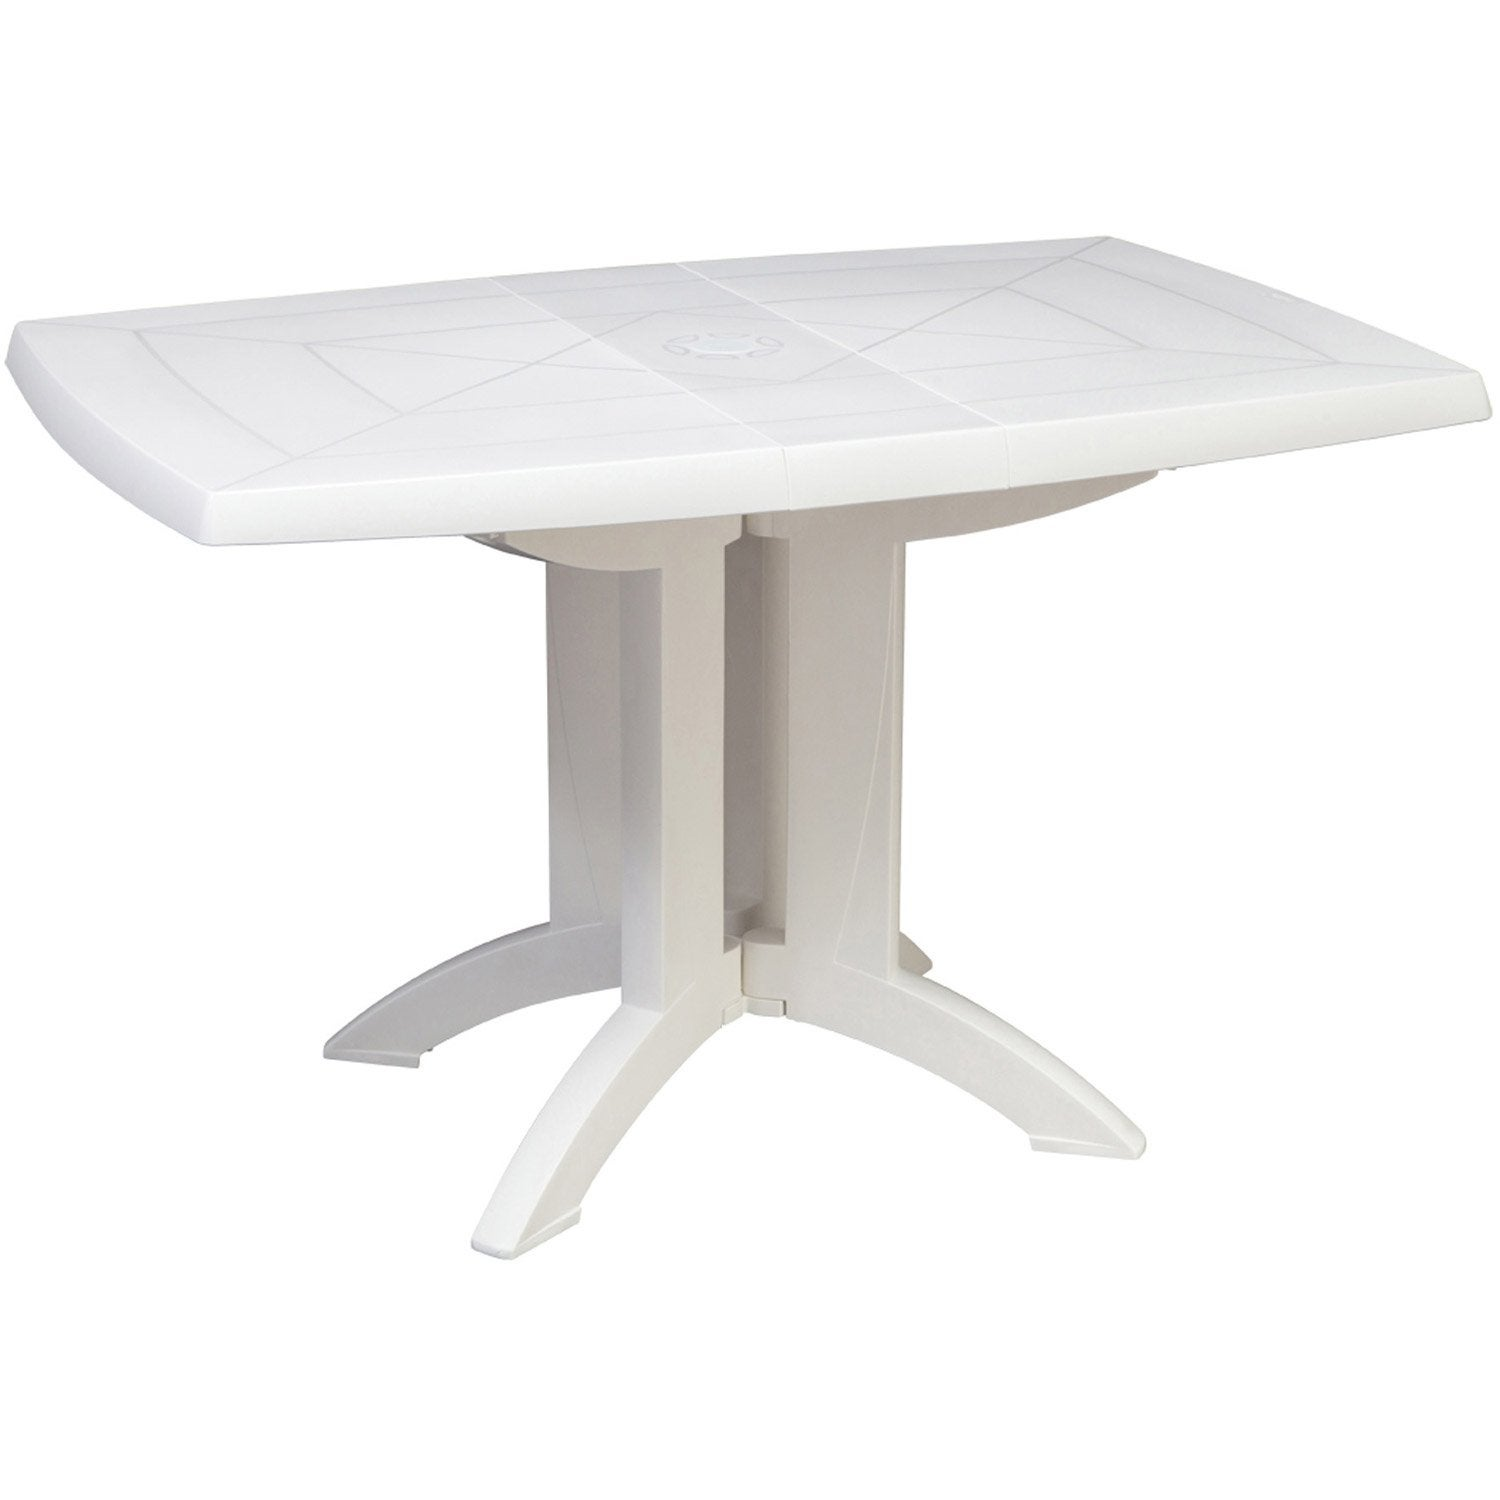 Table de jardin grosfillex v ga rectangulaire blanc 4 for Leroy merlin table jardin